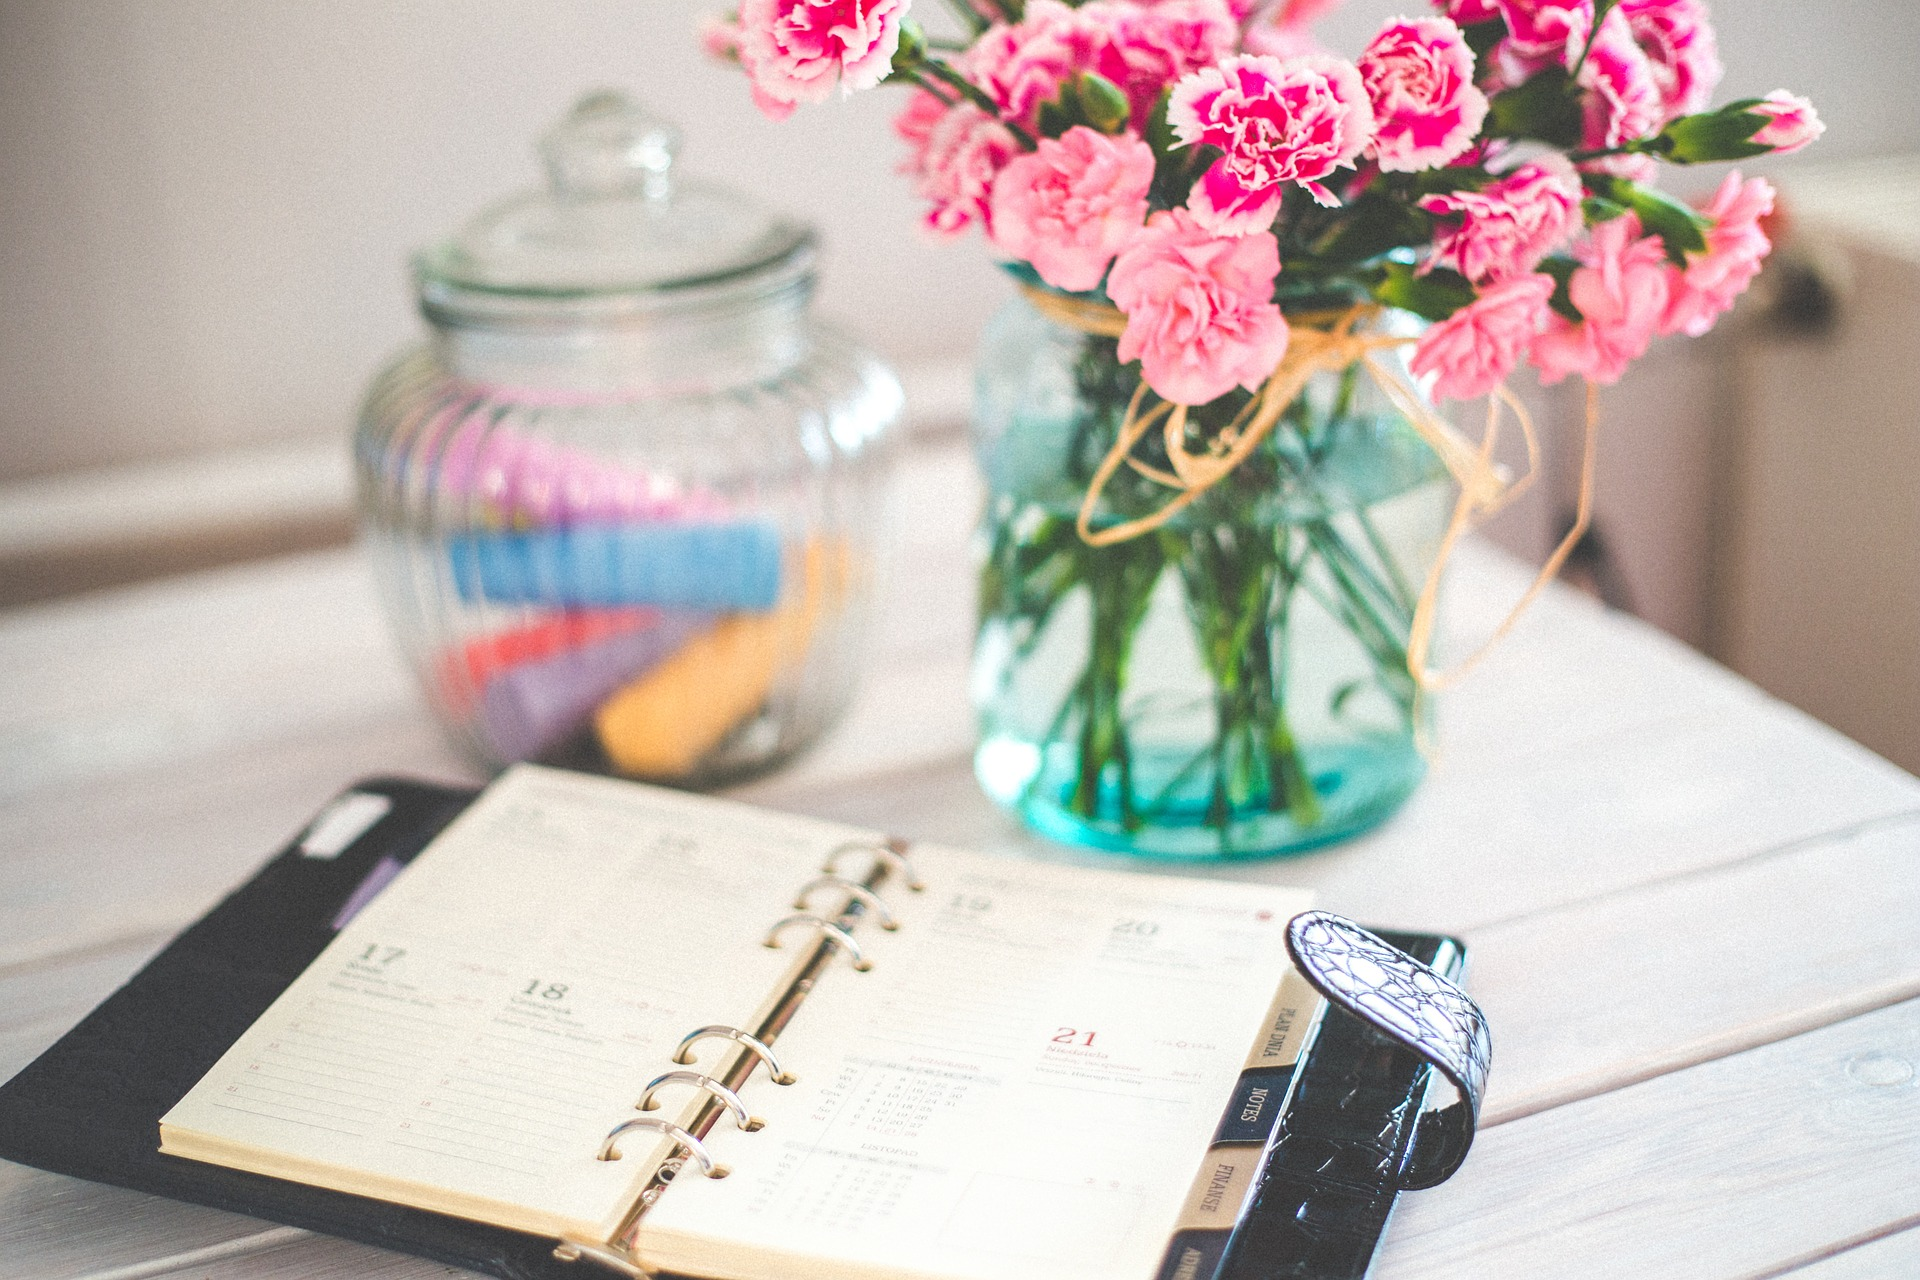 Get organised with your Hertfordshire wedding planning